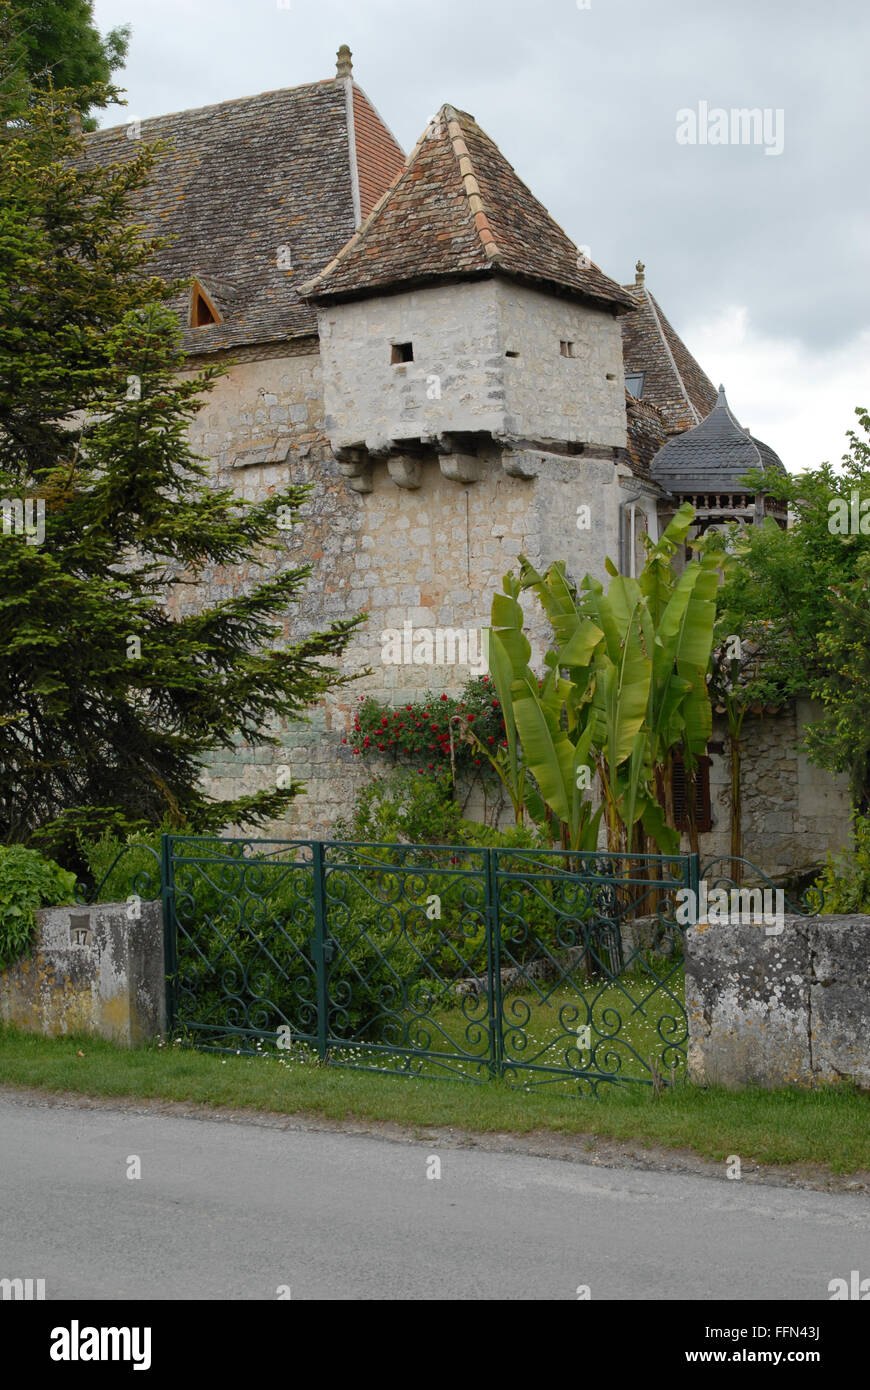 Issigeac, Dordogne.  House on the rue Cardenal with jutting upper storey on a narrow stone pedestal. - Stock Image